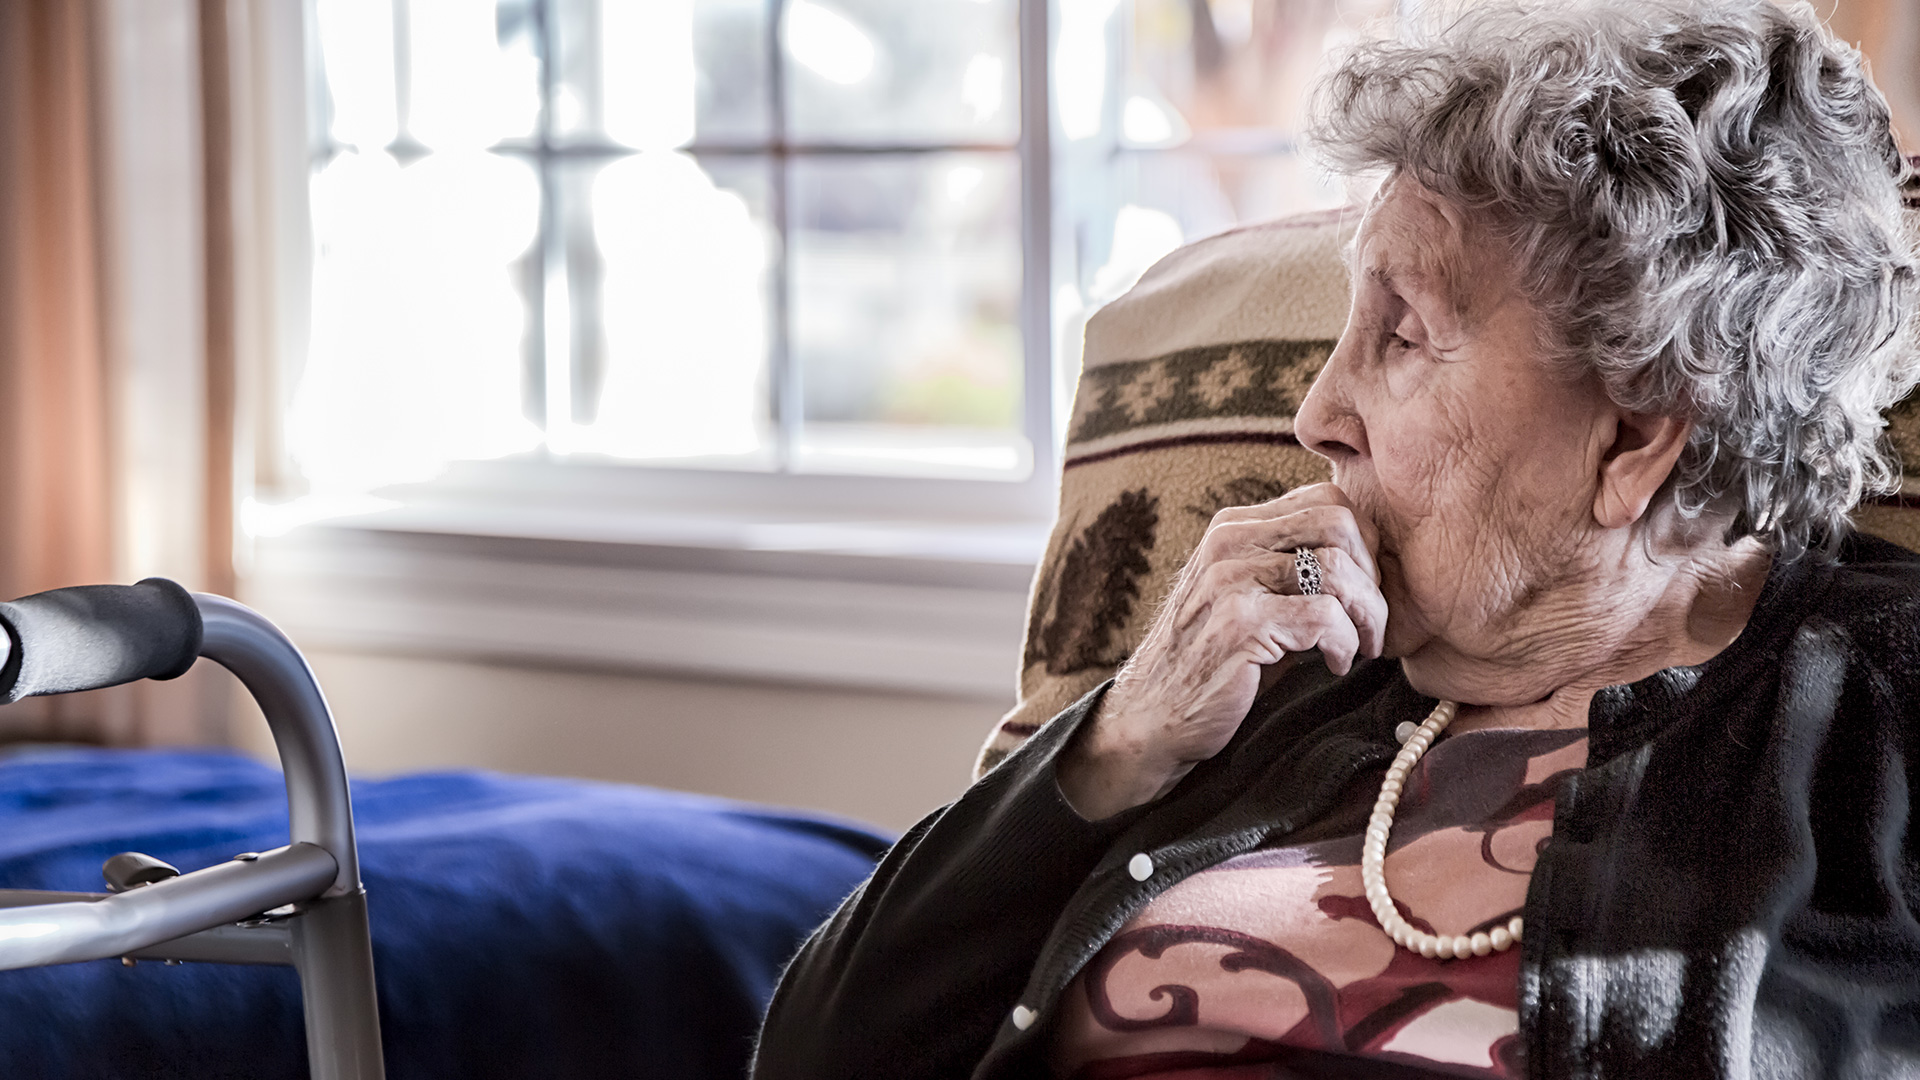 Genes are the building blocks of every individual and how they work. Scientists have found evidence linking certain genes with Alzheimer's disease.